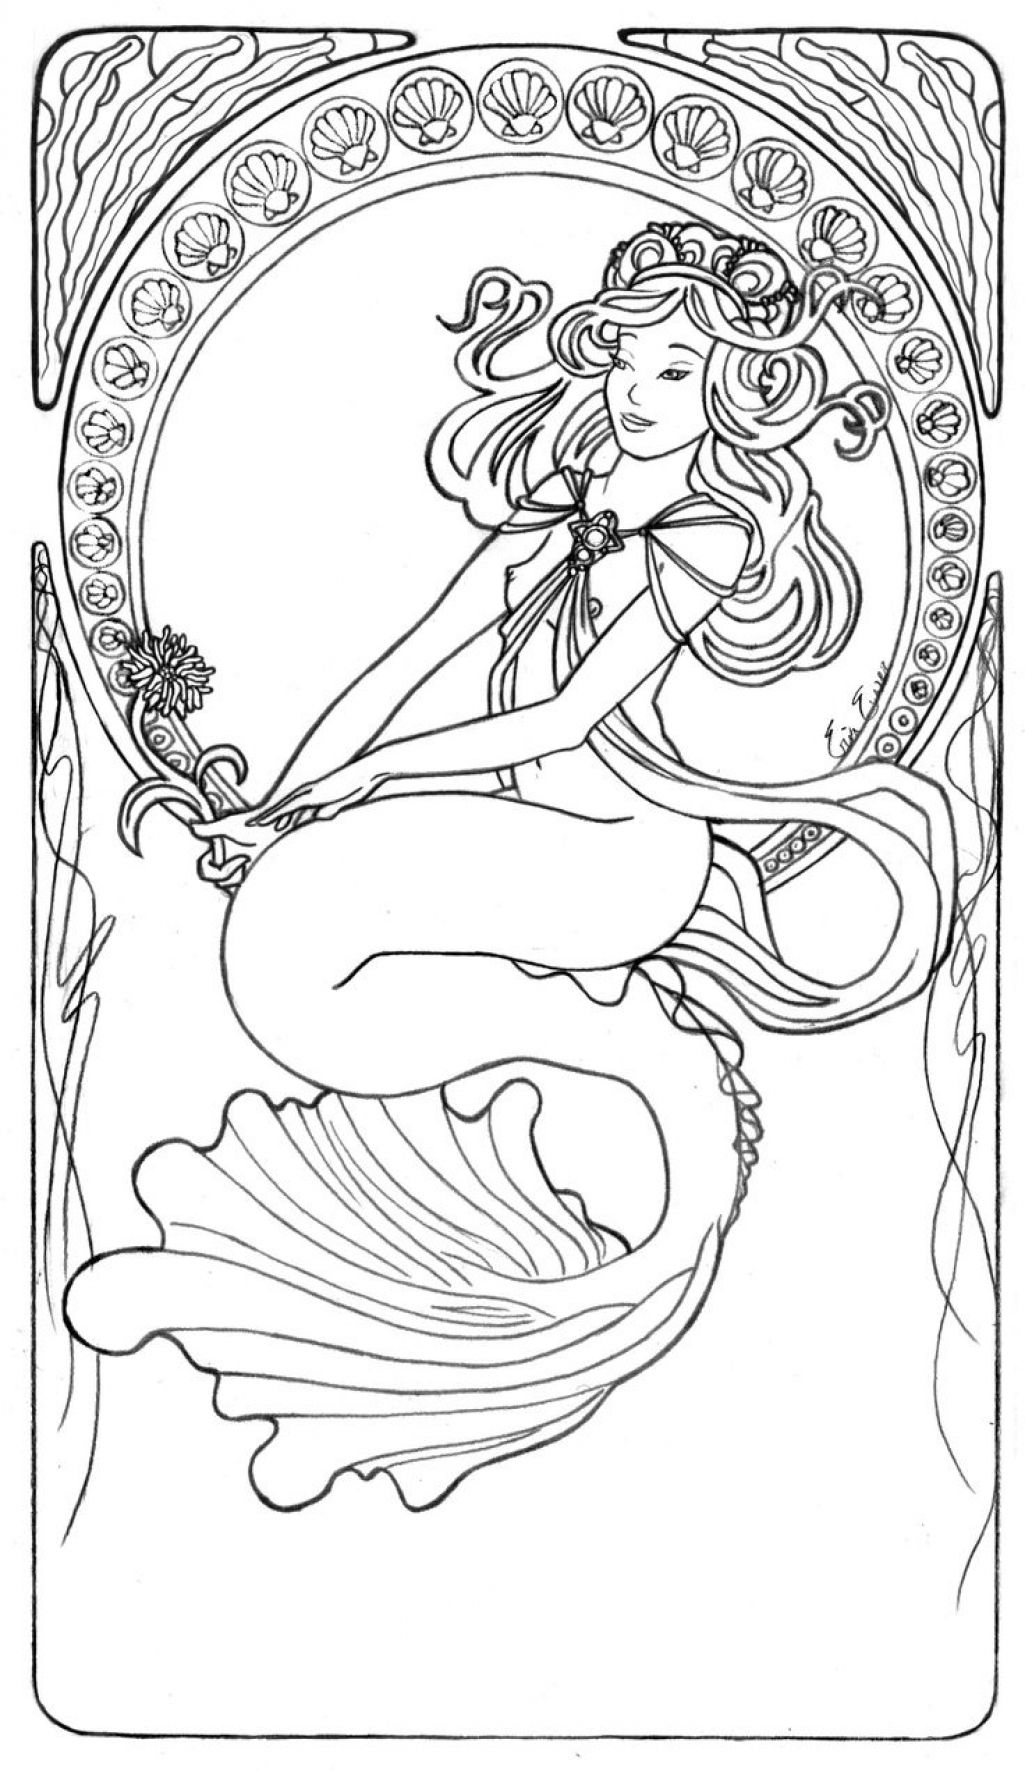 Free coloring pages com printable - Free Coloring Pages Printable For Adults Coloring Page